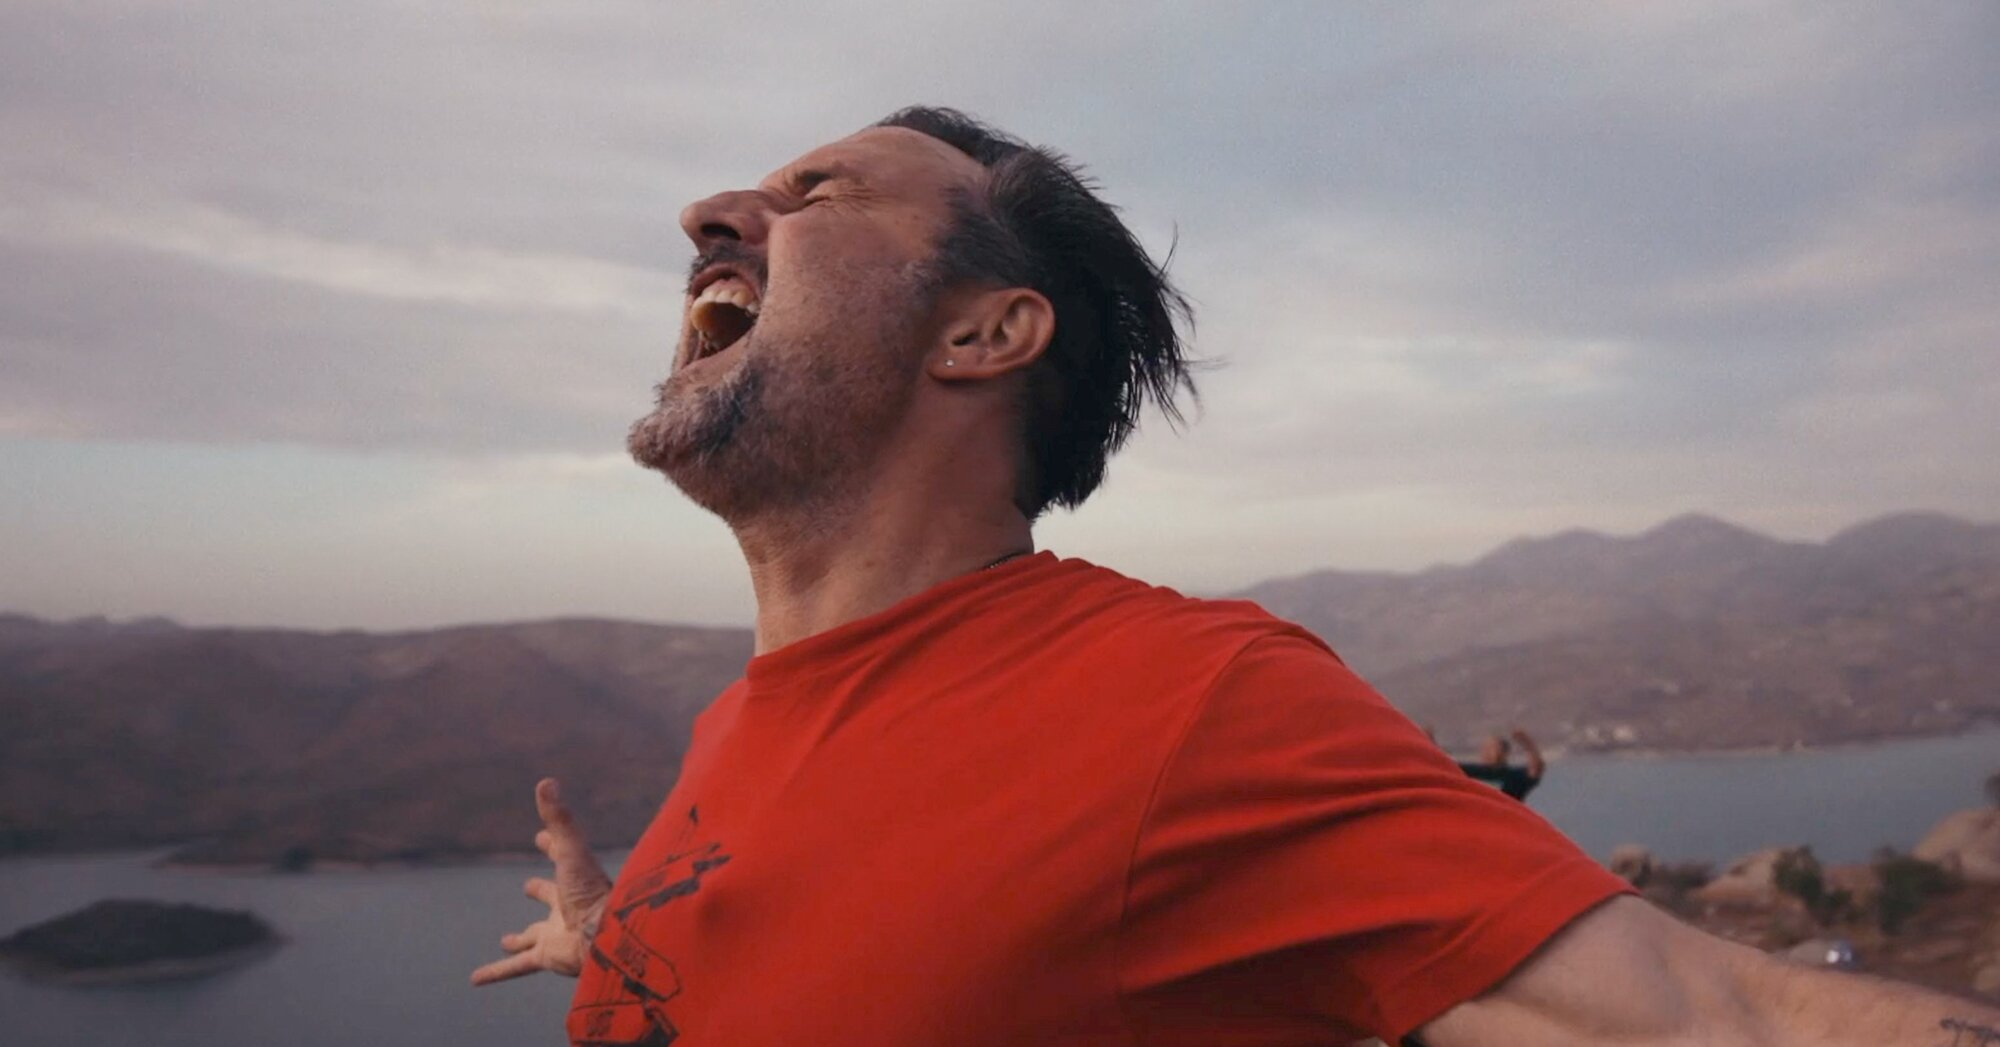 Paltrocast with Darren Paltrowitz: #058 ft. David Arquette, Rob Halford & Less Than Jake's Chris Demakes